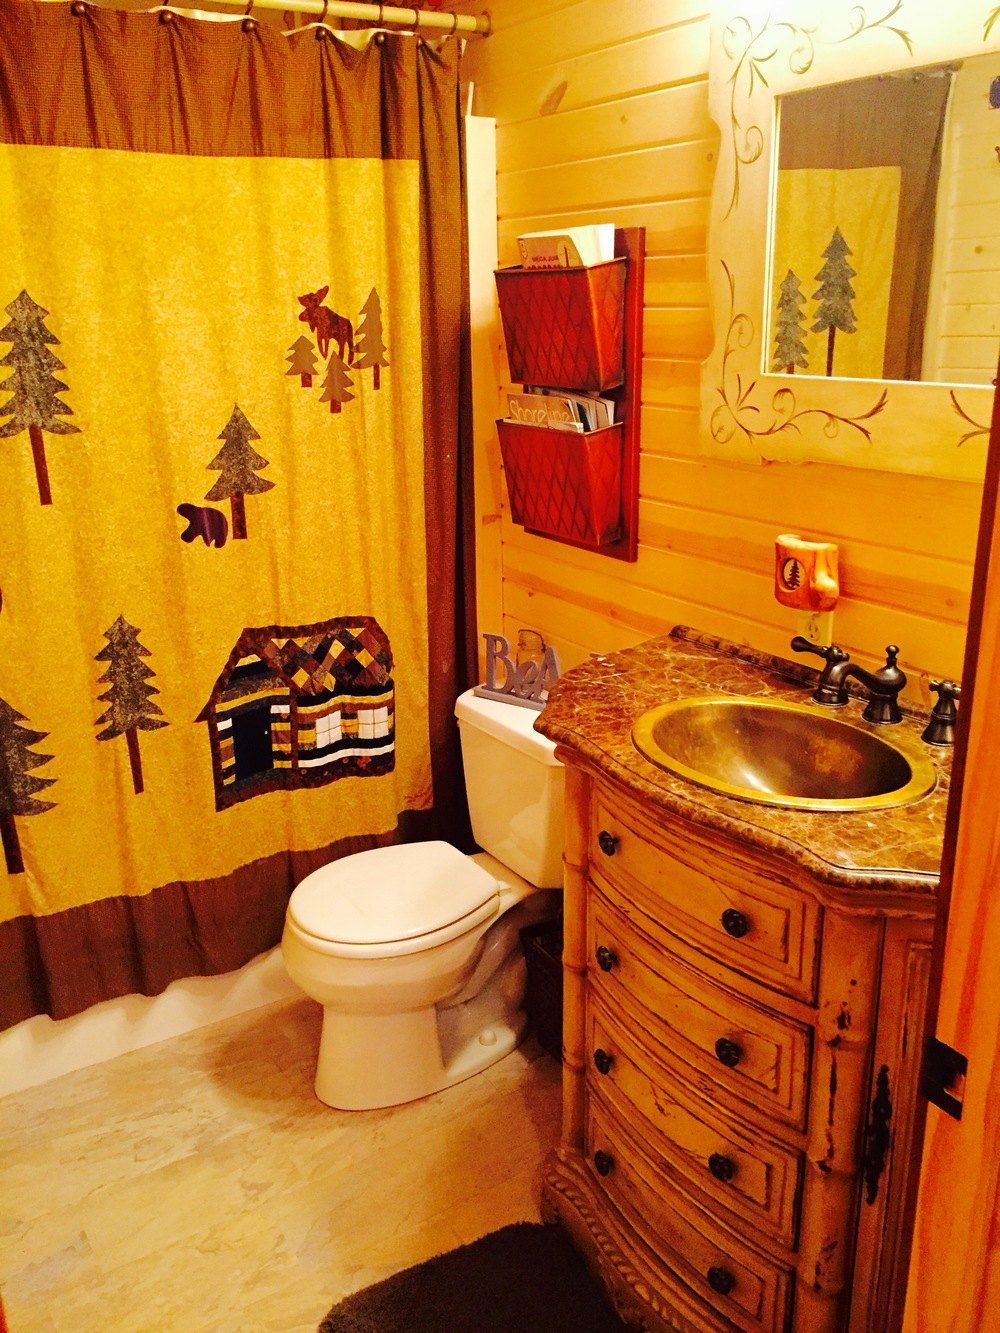 Pentwater MI Vaction Rental Cabin Bath.jpg